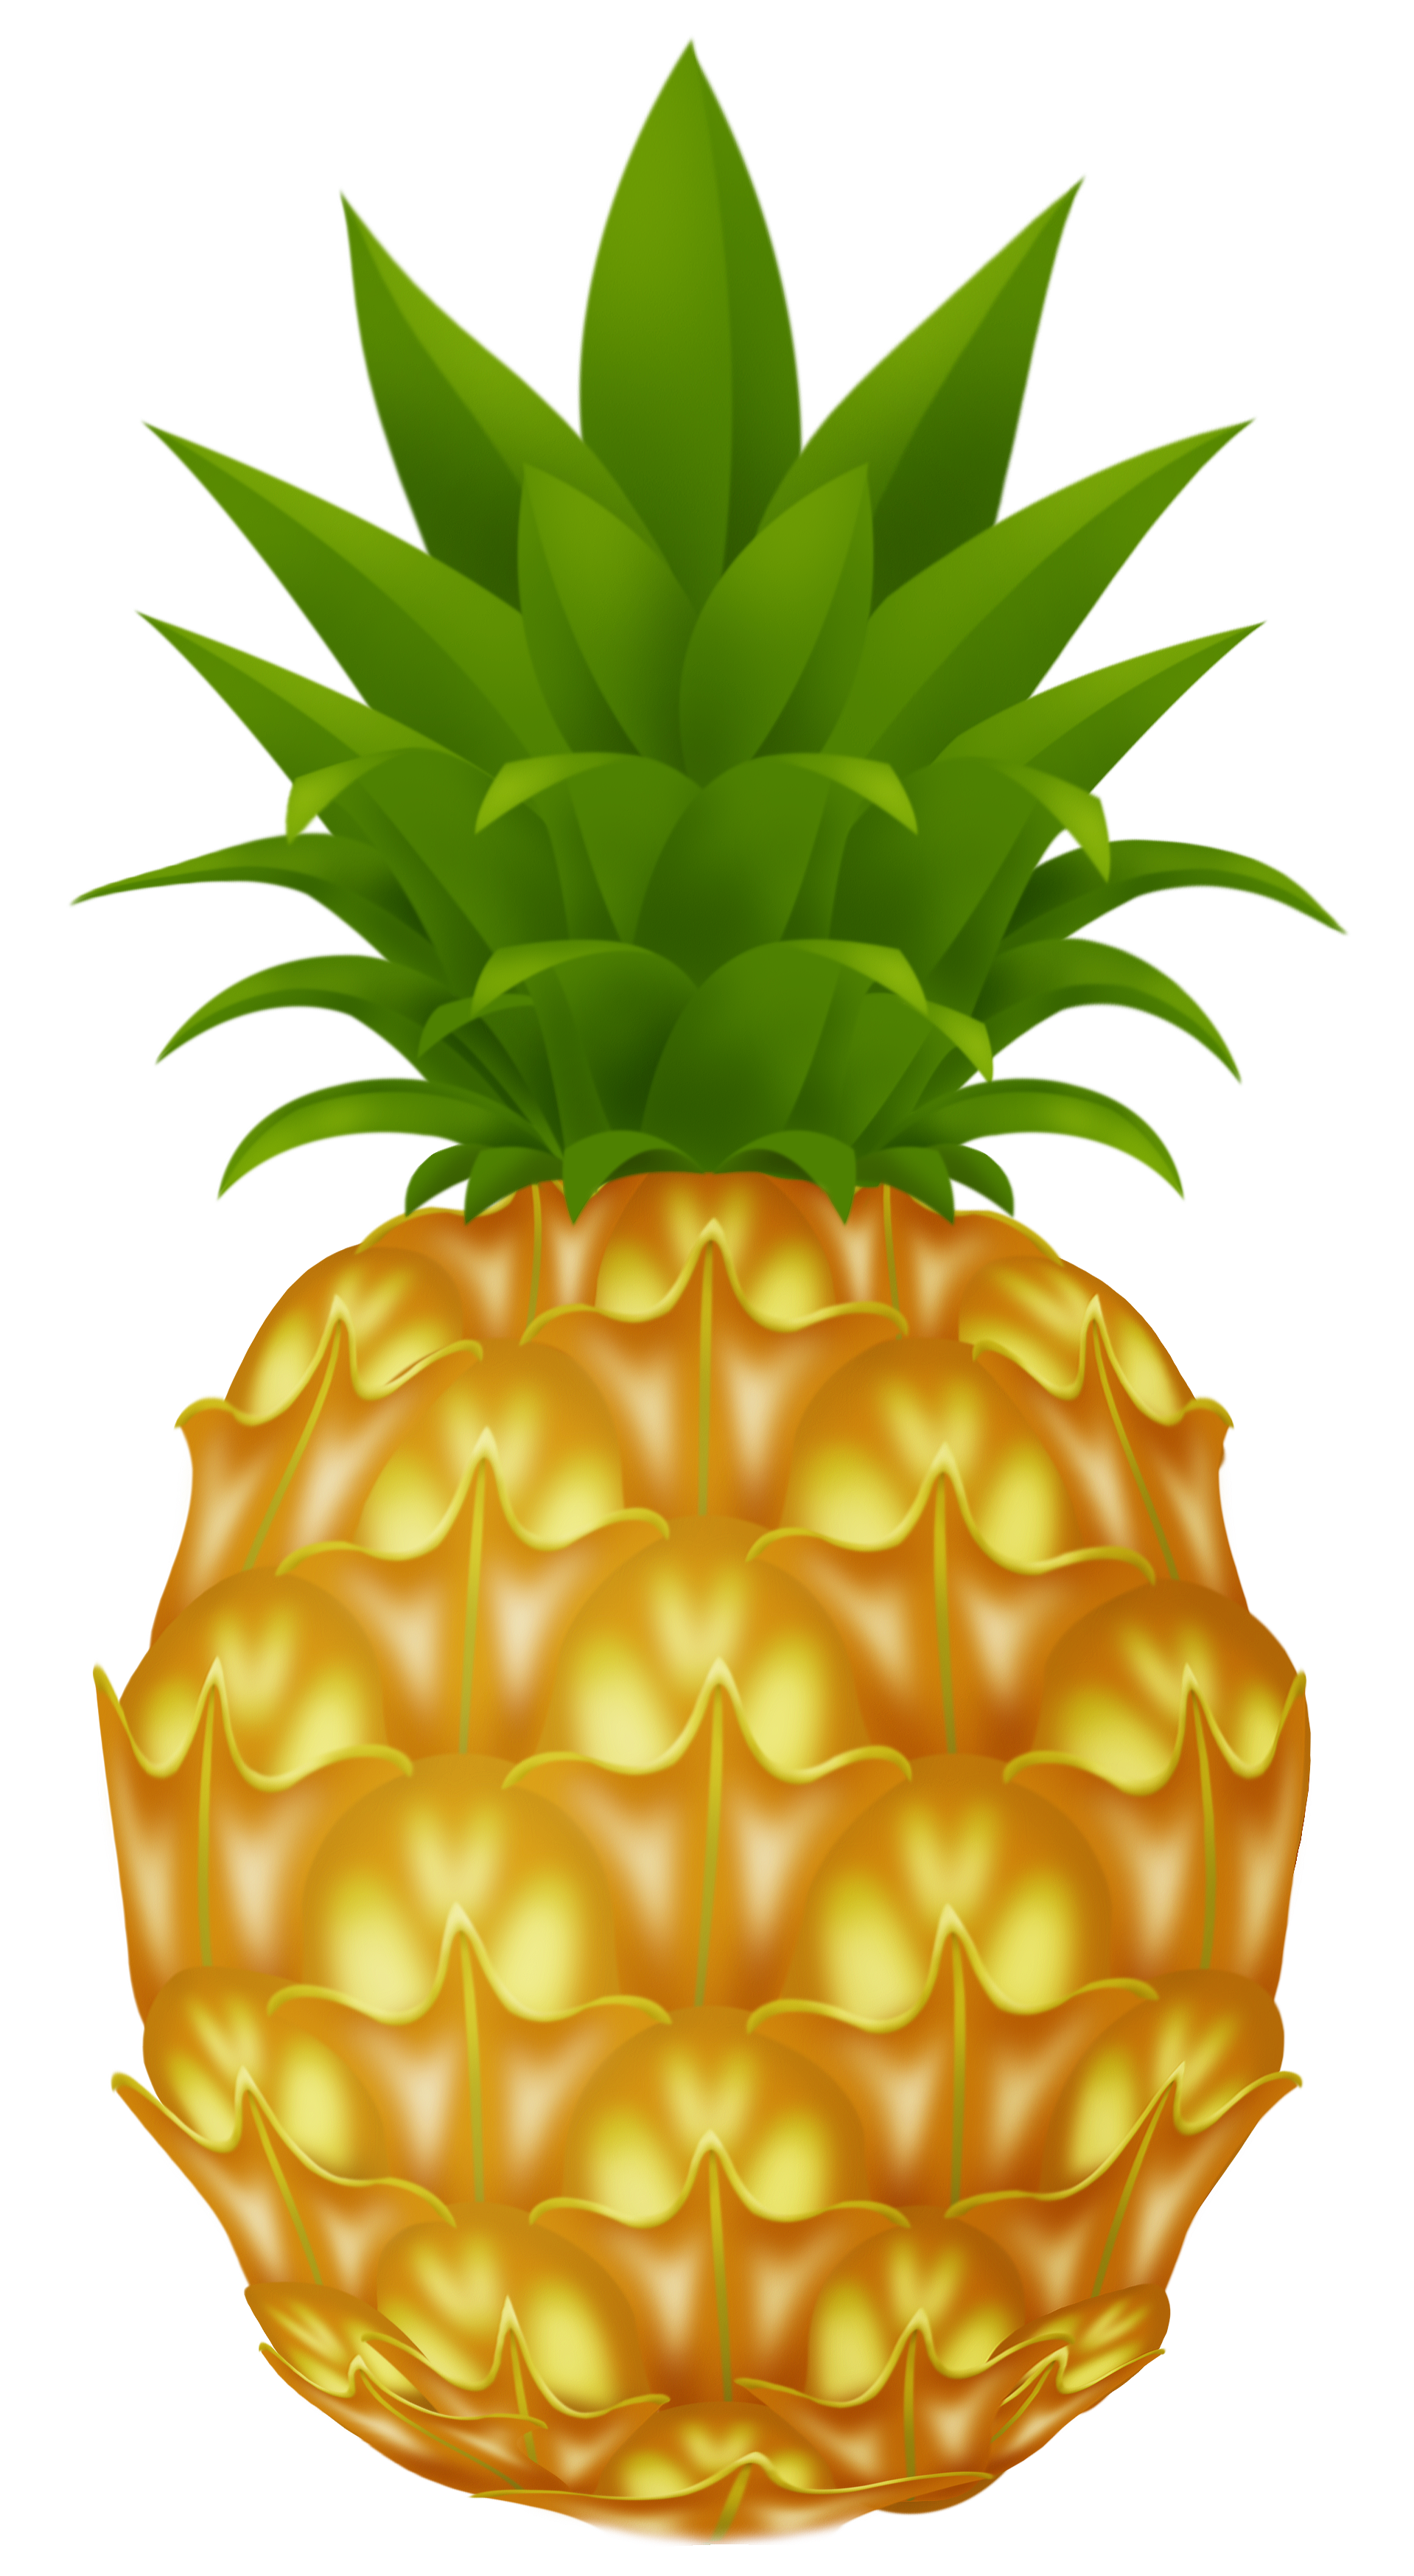 Png picture clip art. Pineapple clipart animated